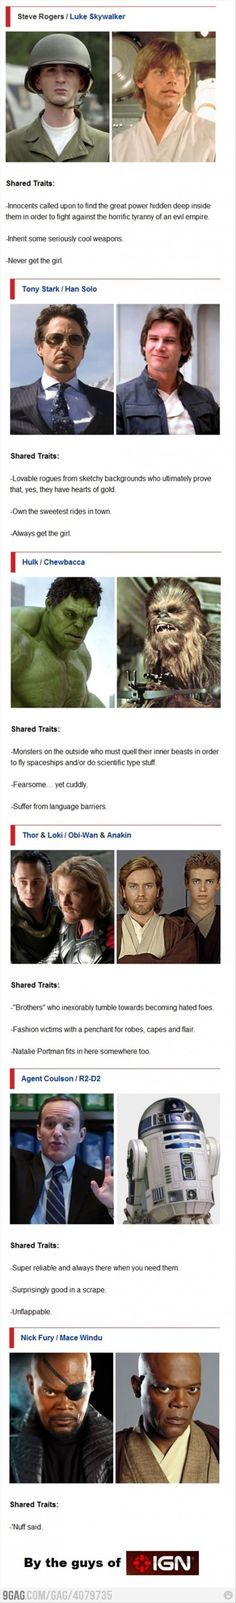 The Avengers and Star Wars. Never thought of this before. Kinda funny now that I think of it...